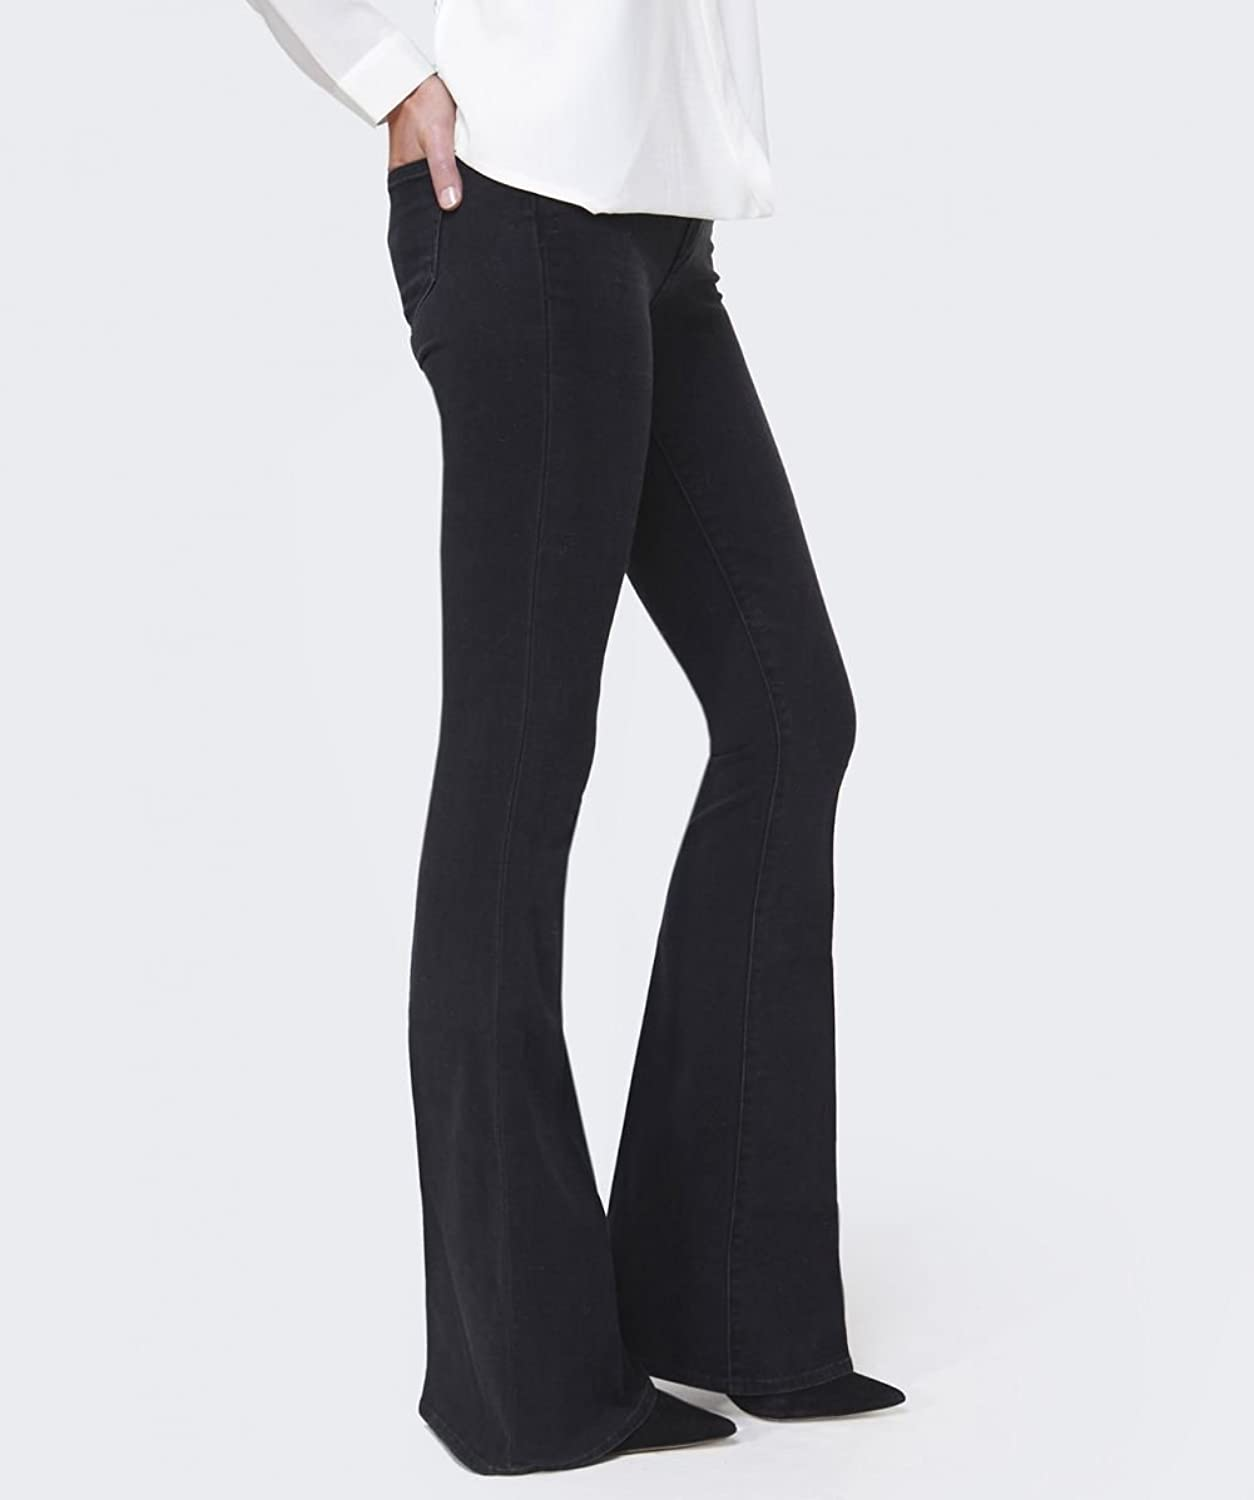 Paige Denim Joannie High Rise Bell Canyon Jeans Black